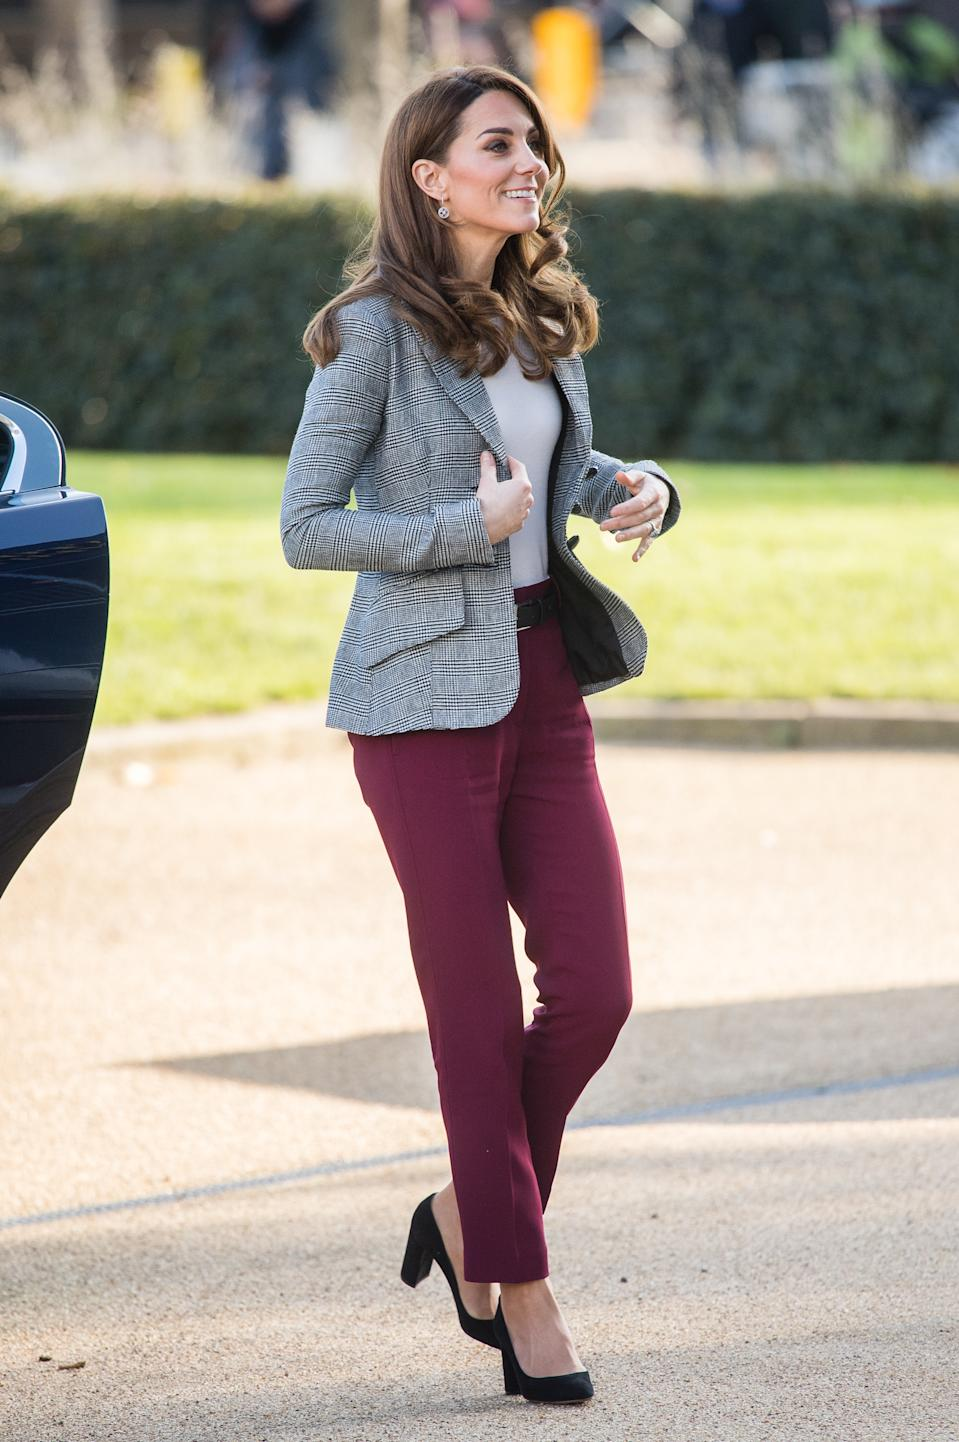 The Duchess of Cambridge attends Shout's Crisis Volunteer celebration event. [Photo: Getty]